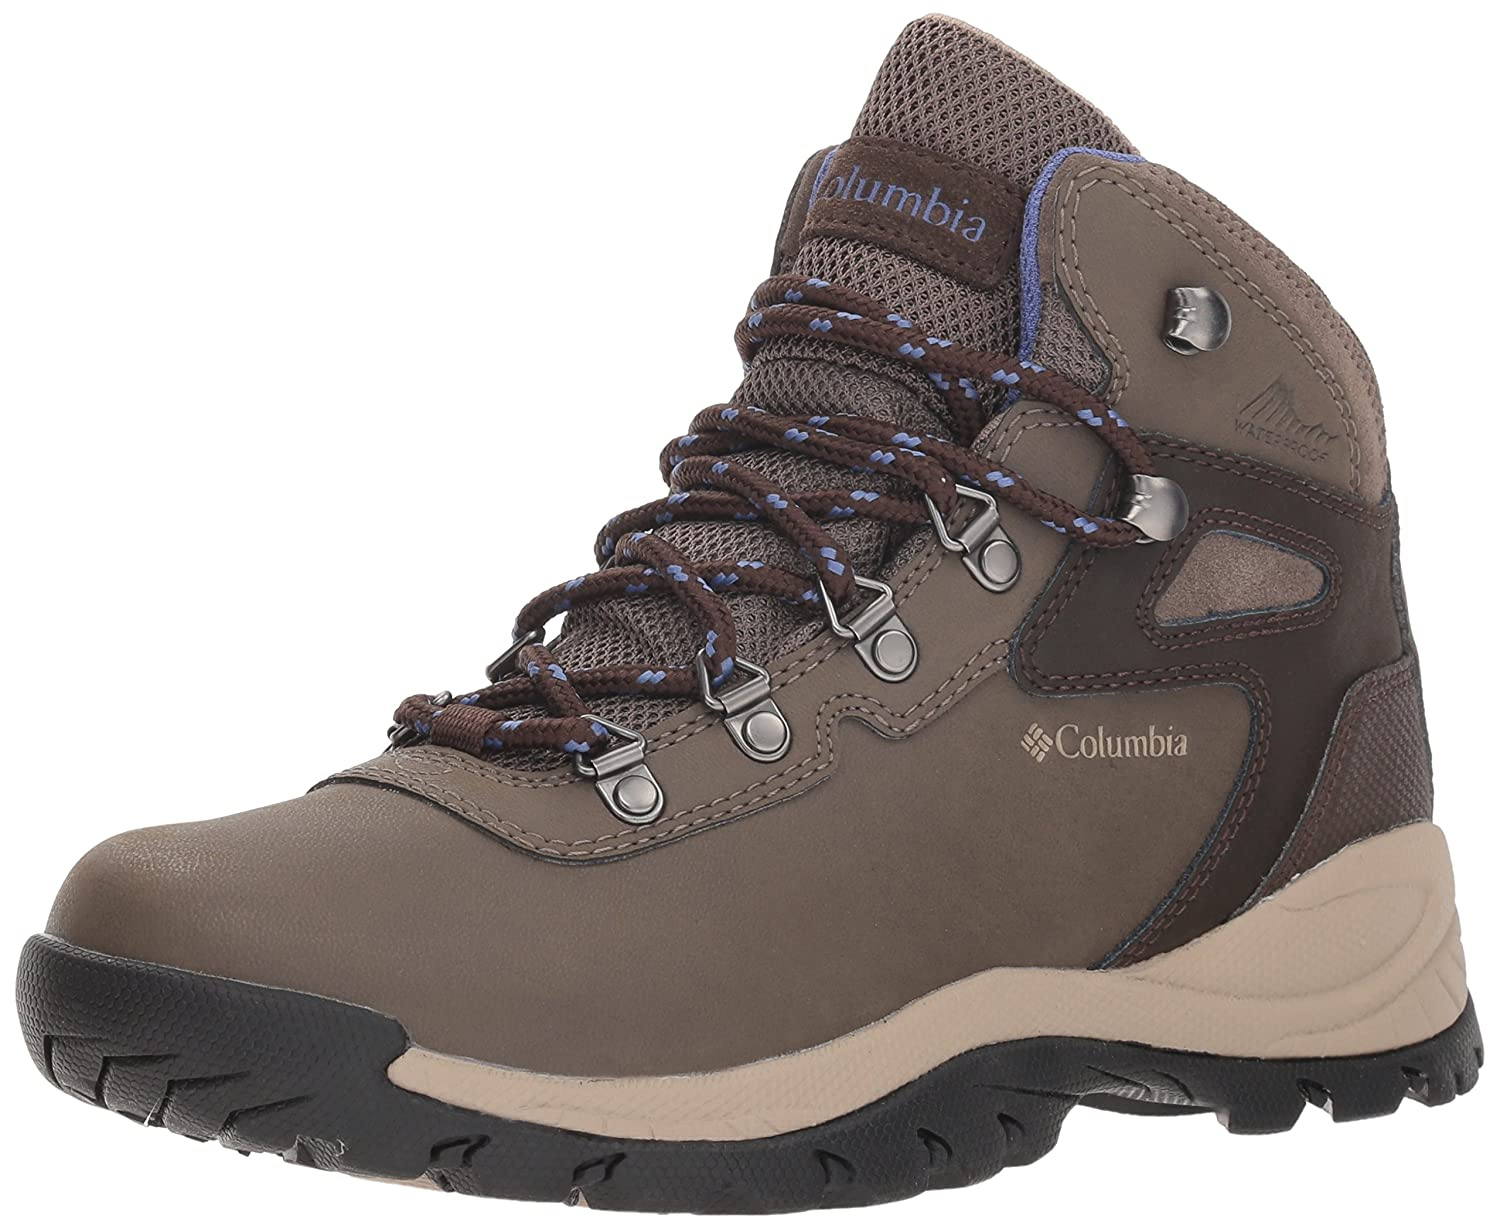 Columbia Women's Newton Ridge Plus Hiking Shoe B0787HV3DD 6 M US|Mud, Eve